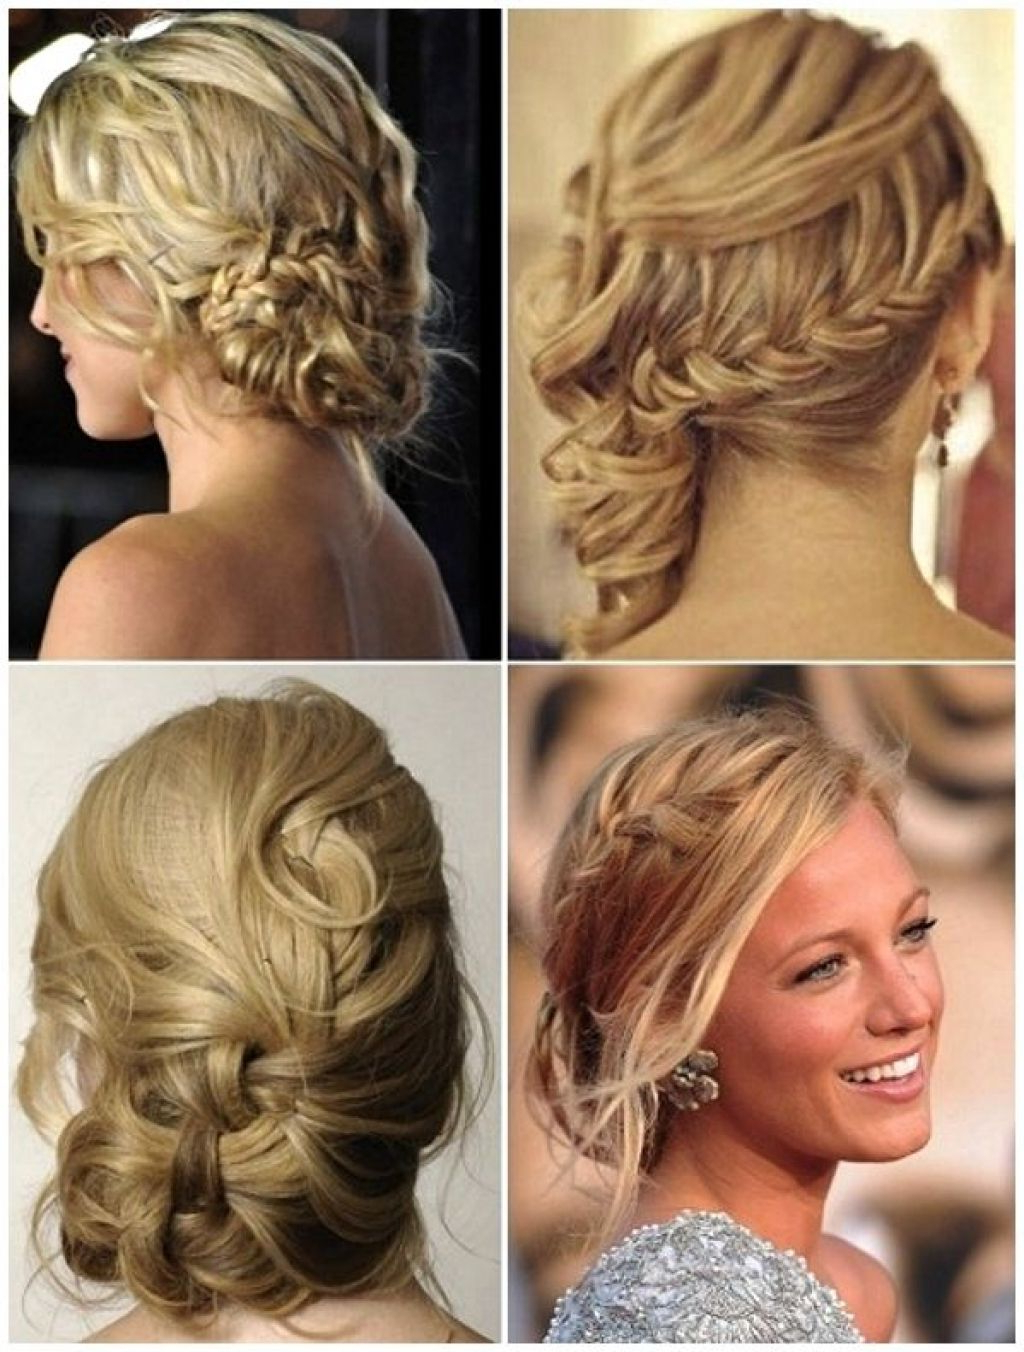 Hairstyle For Wedding Guest Brides Hairstyle Ideas Short Hair Within Hairstyles For Short Hair Wedding Guest (View 5 of 25)